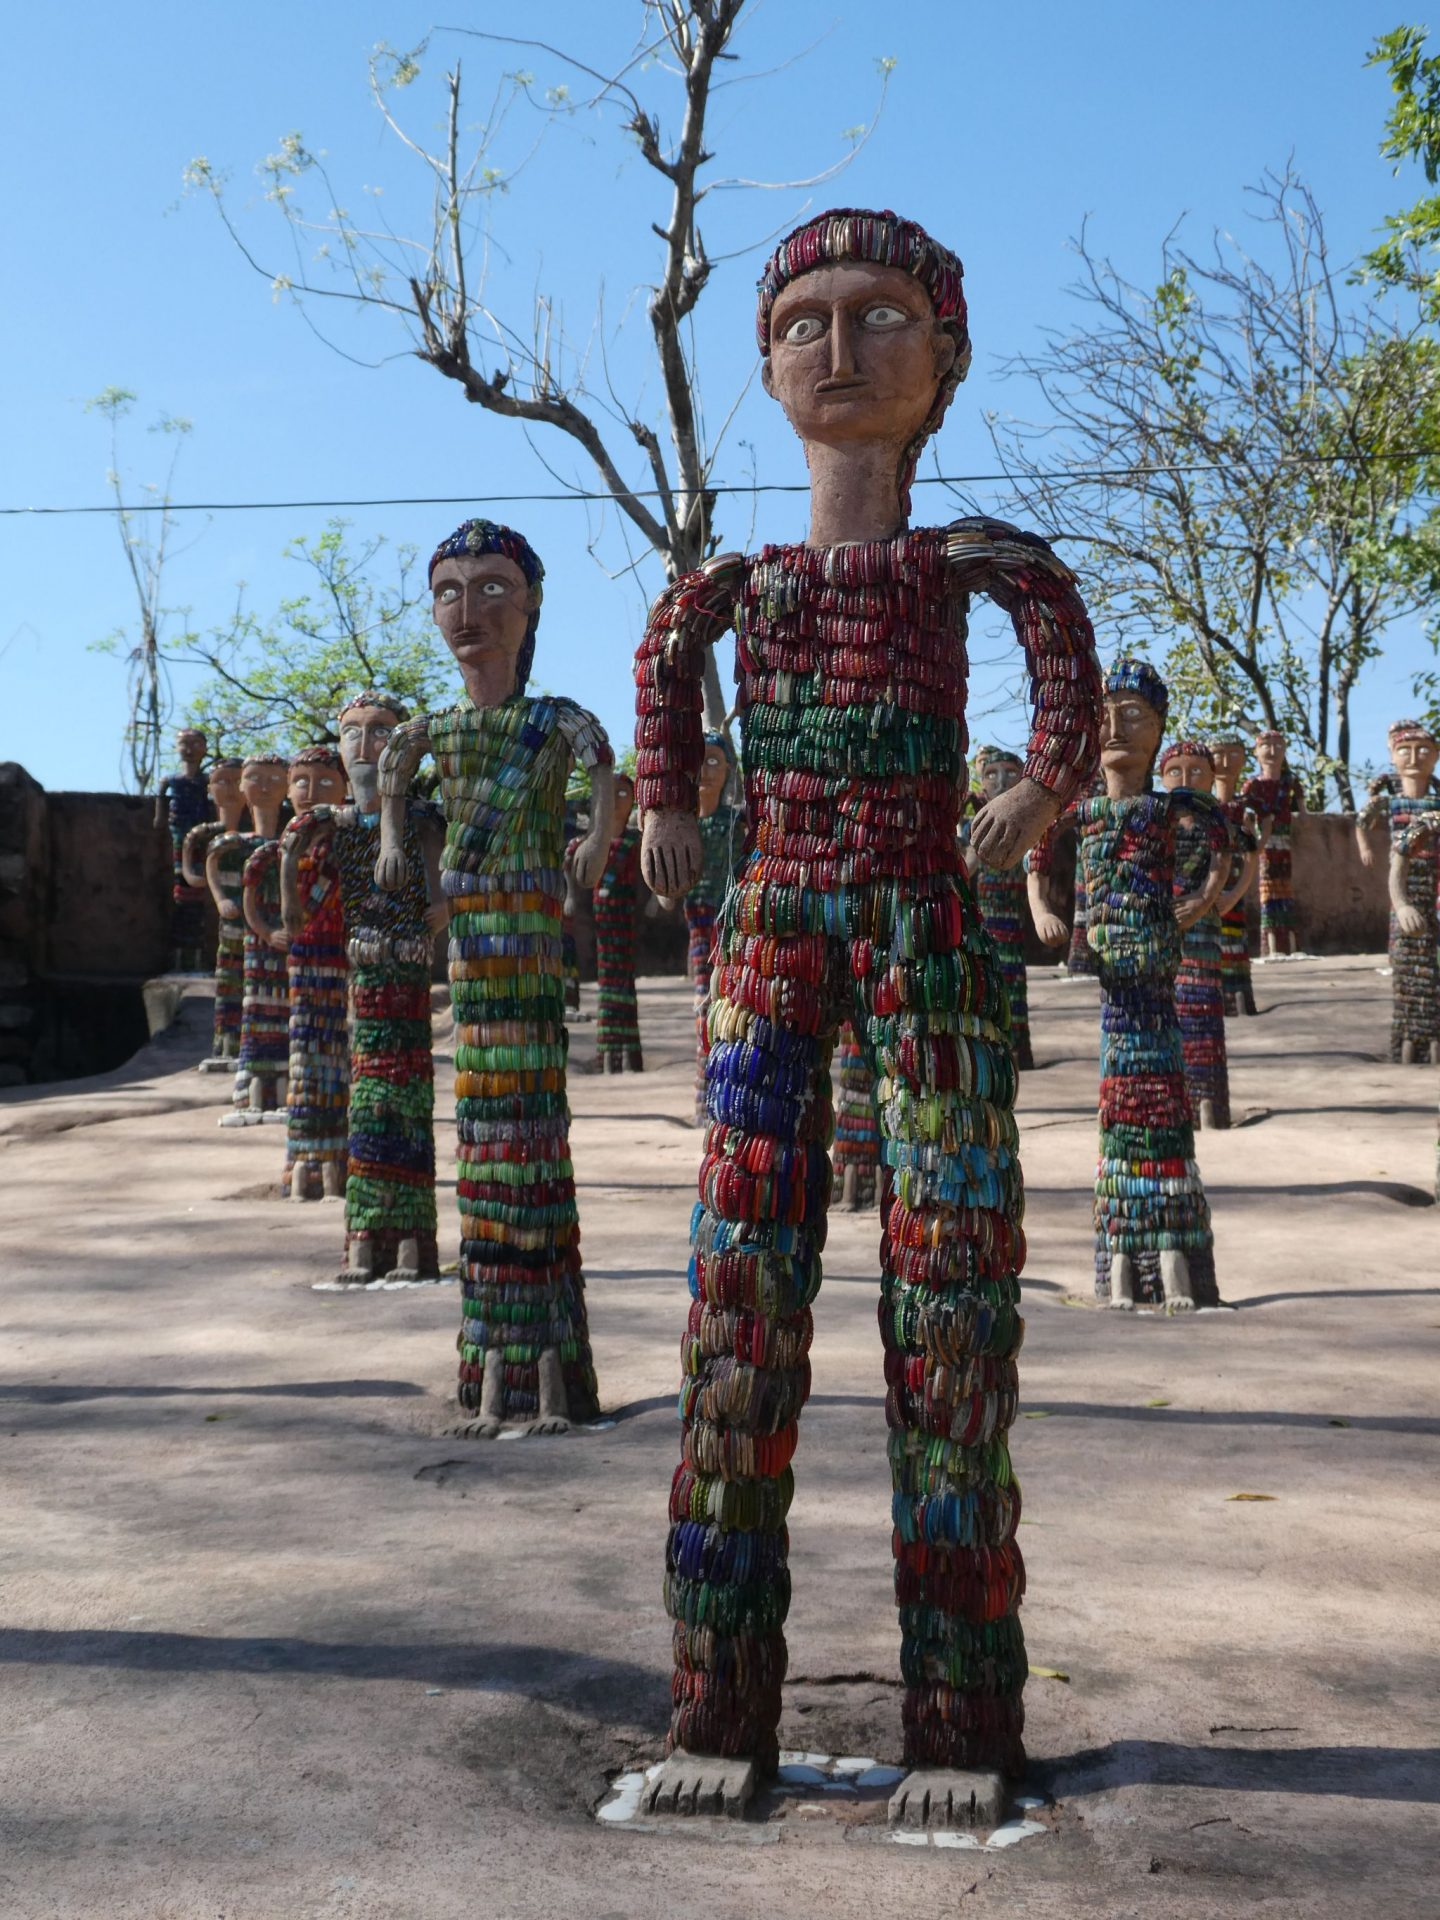 Nek Chand's Rock Garden, Chandigarh (7 March 2018)